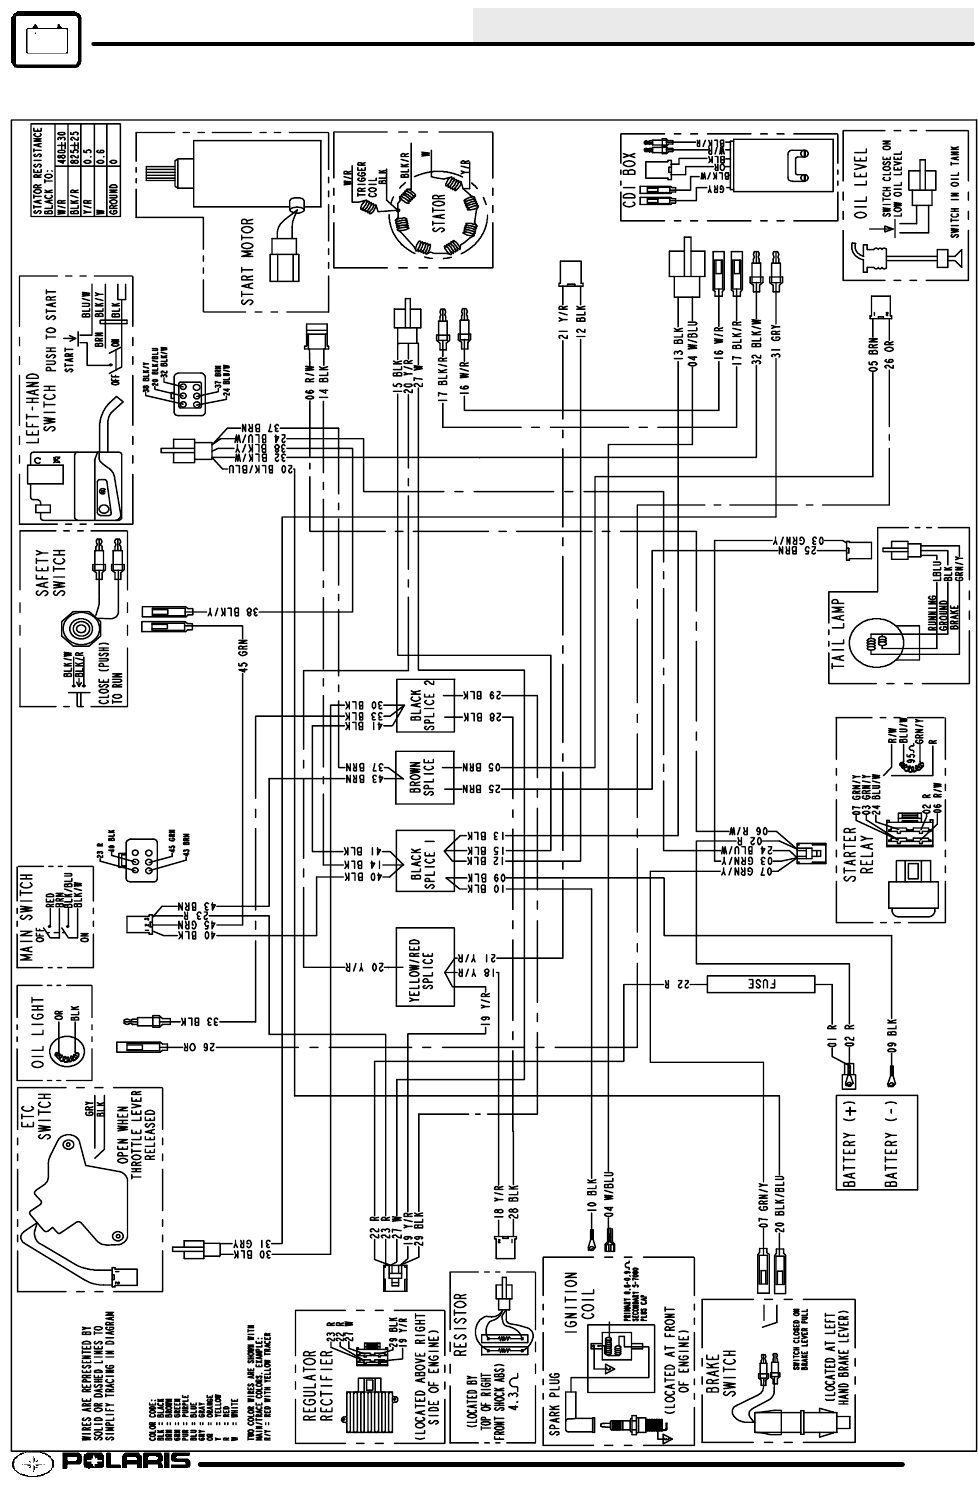 2007 Polaris Ranger 700 Xp Wiring Diagram polaris rzr 1000